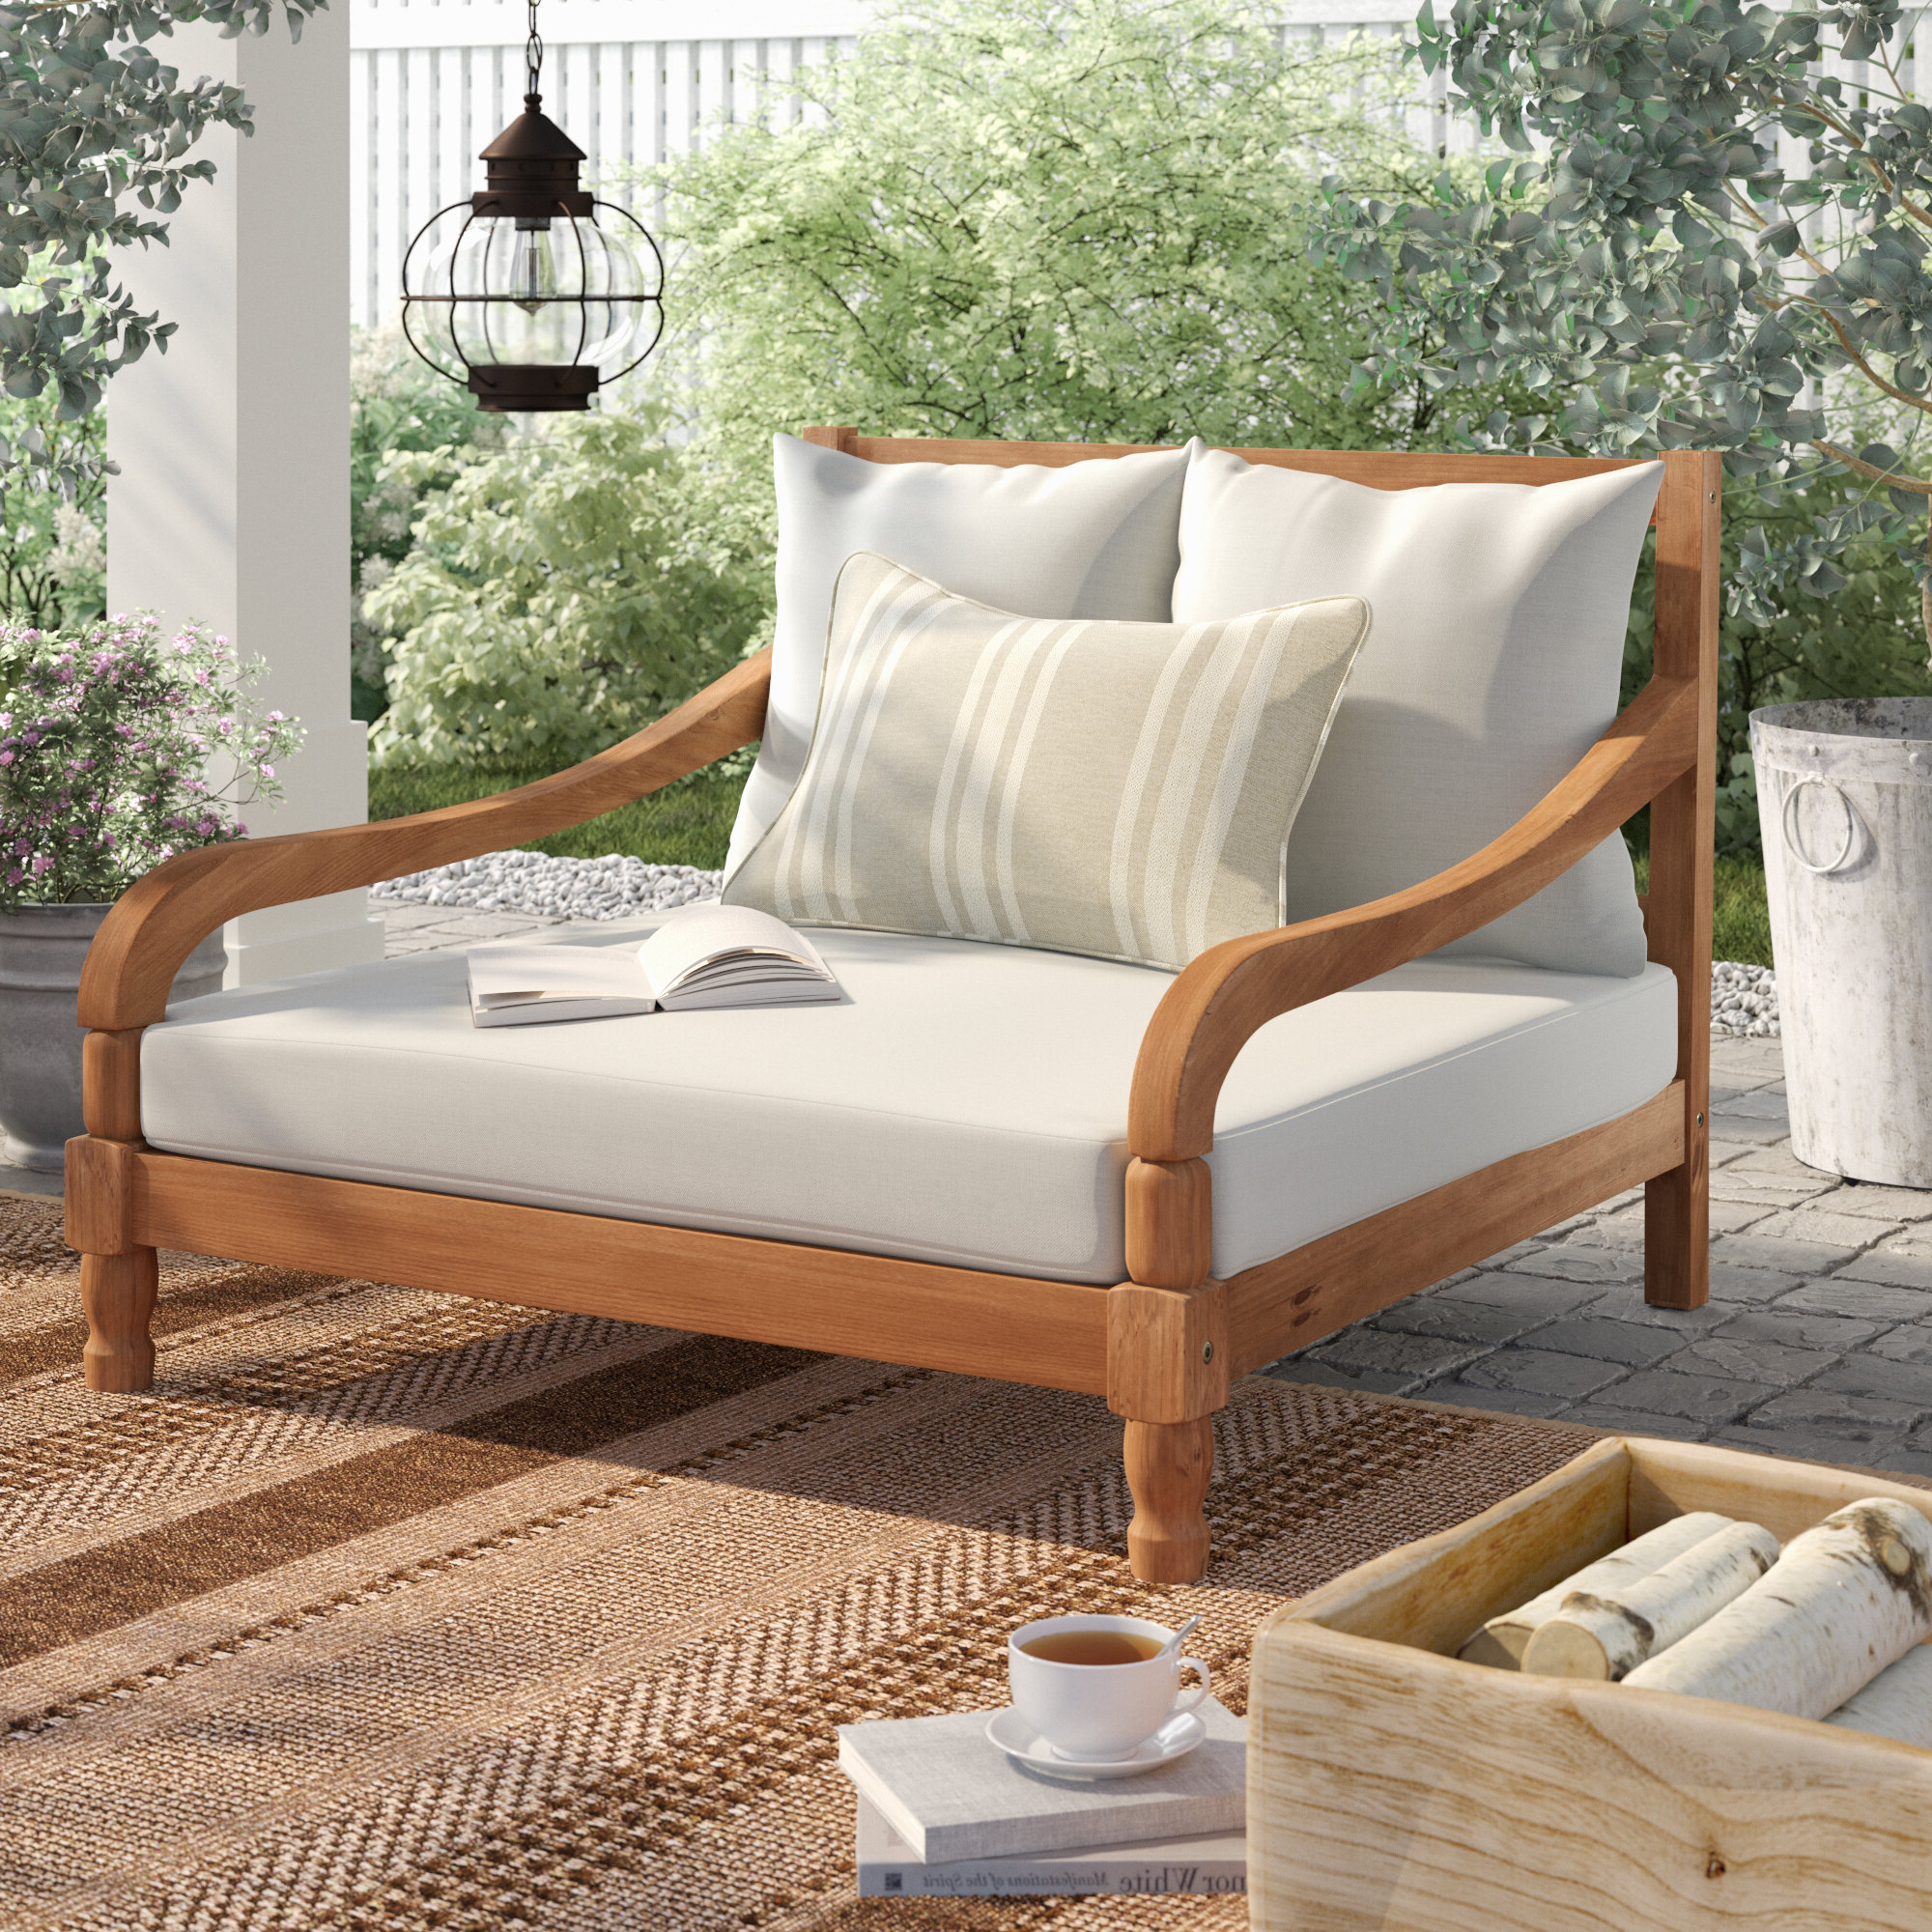 Widely Used Outdoor Acacia Wood Chaise Lounges With Cushion Regarding Wiest Double Chaise Lounge With Cushion (View 25 of 25)